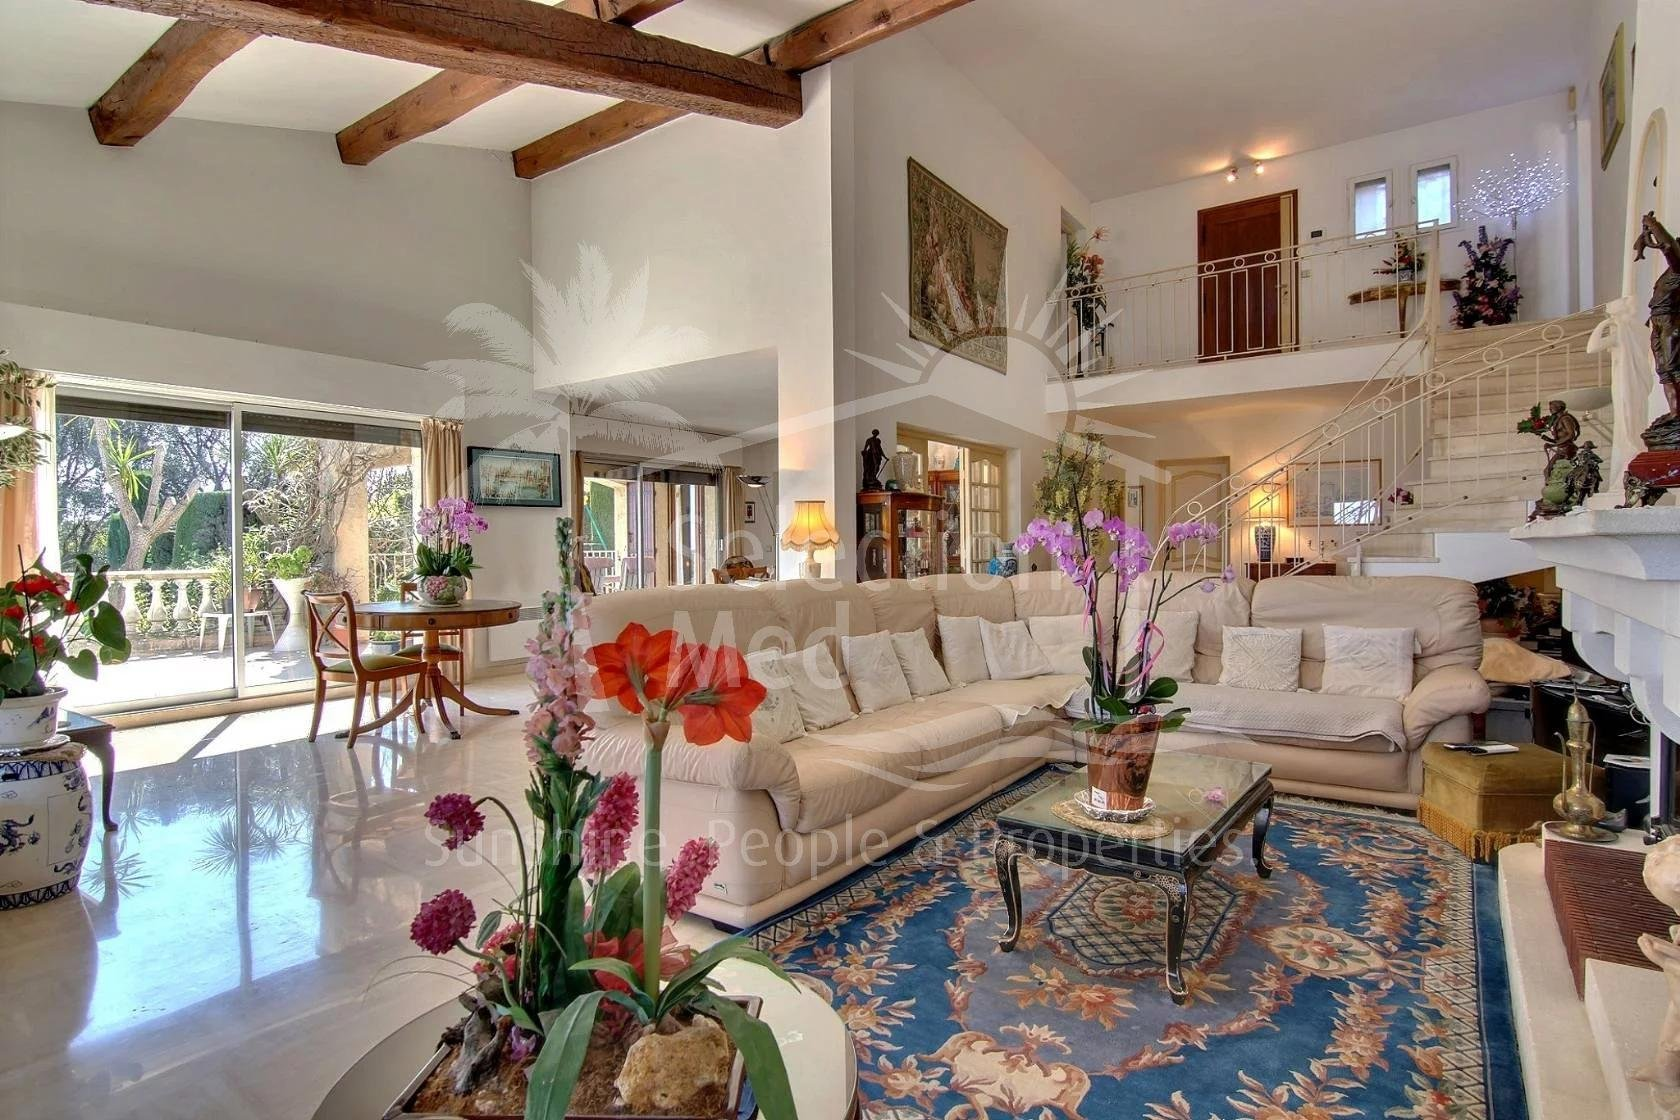 Beautiful Provencal house in Antibes